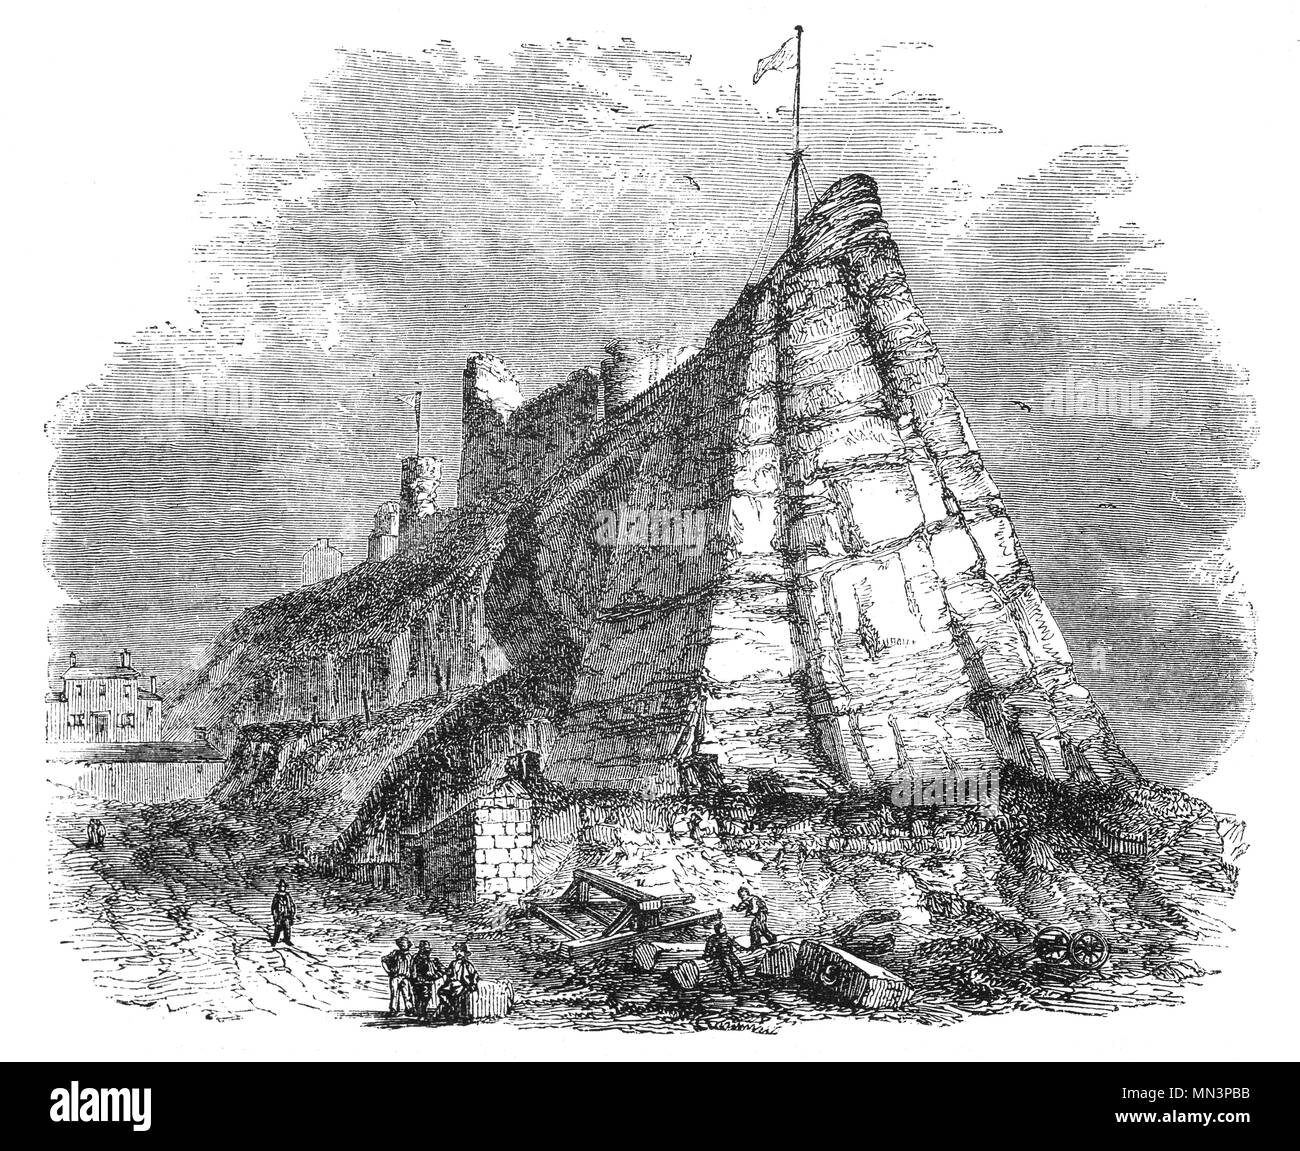 Hastings Castle was originally built as a motte-and-bailey castle near the sea. Later that year the famous Battle of Hastings took place near the Hastings castle, in which William was victorious. In 1070 William issued orders for the Castle to be rebuilt in stone. - Stock Image